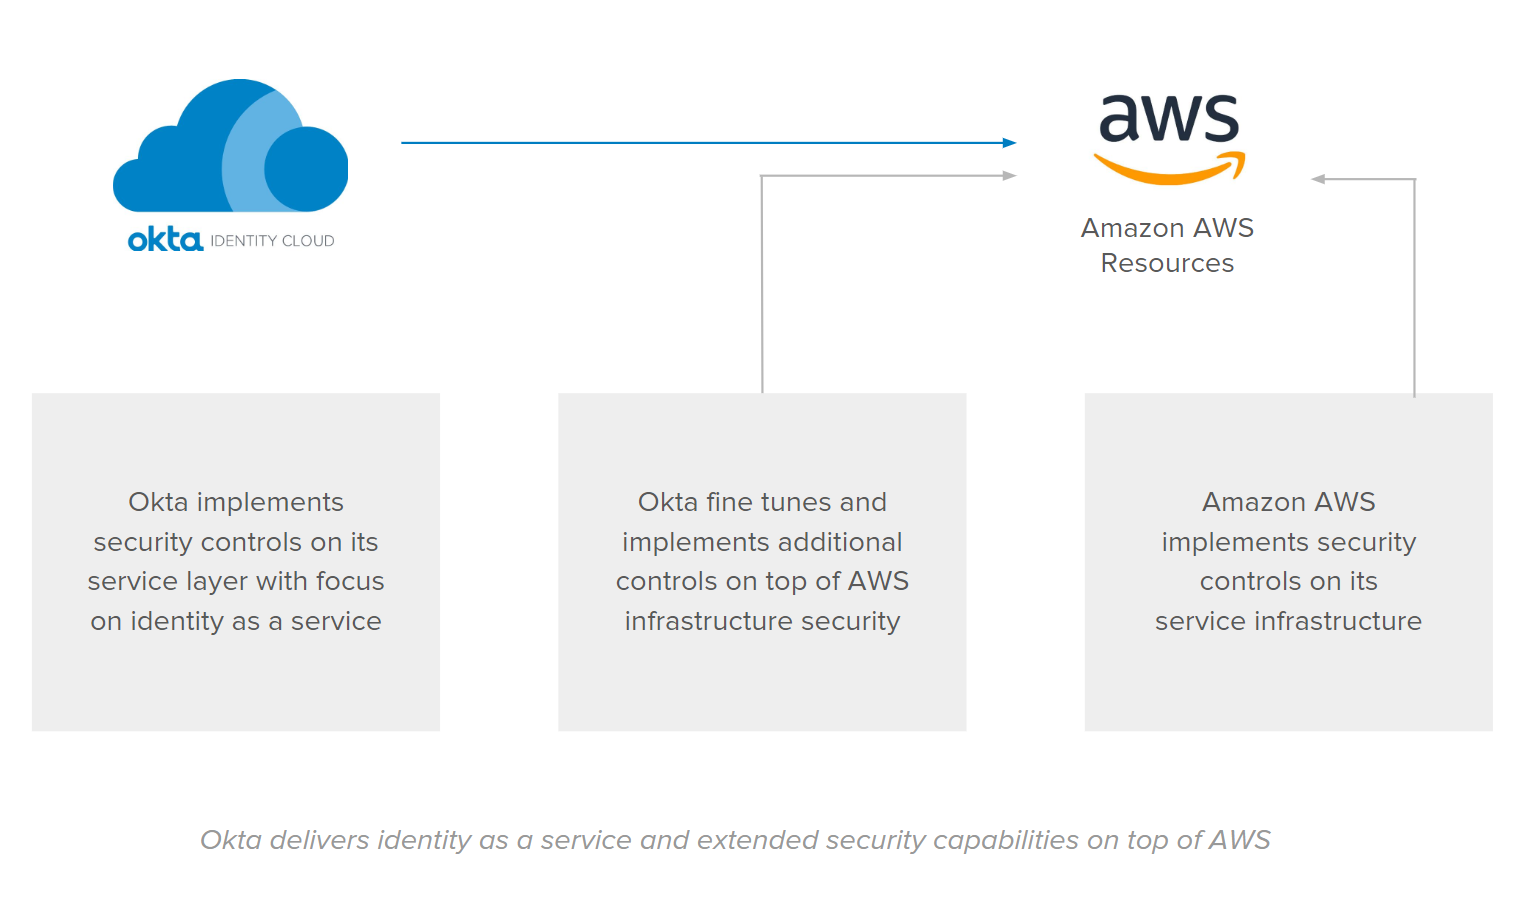 Okta delivers identity as a service and extended security capabilities on top of AWS.